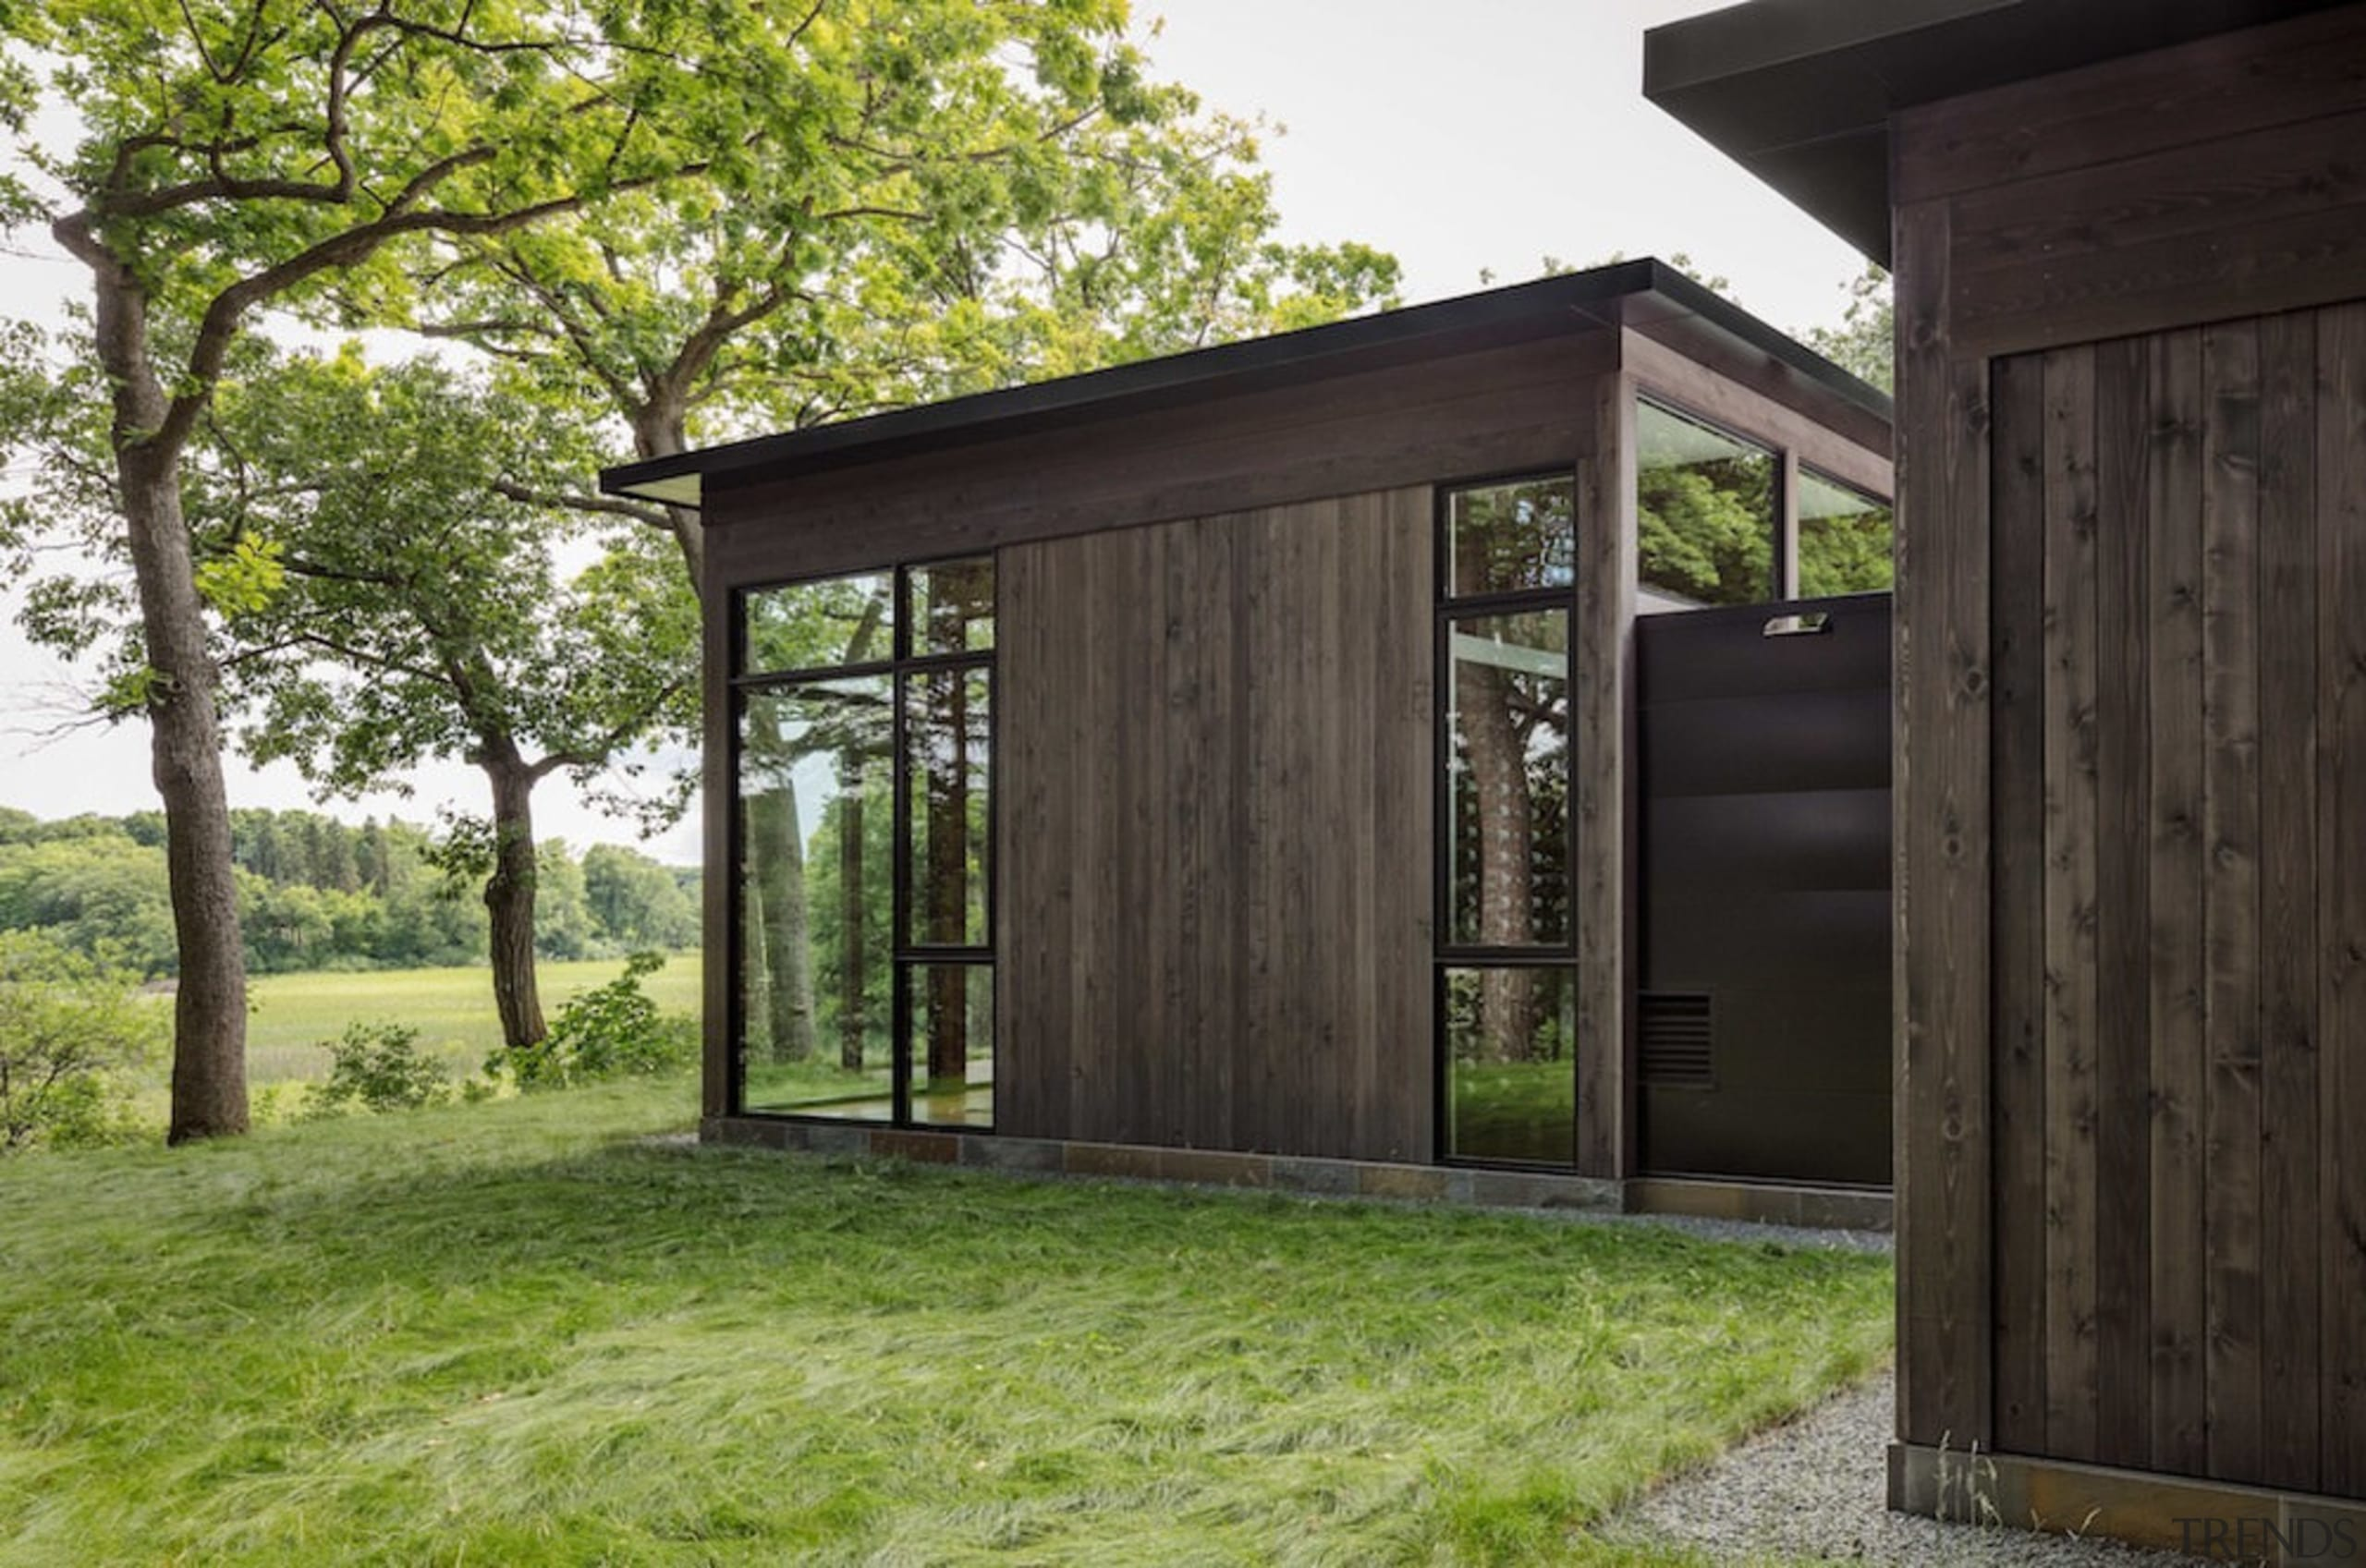 Dark stained timber lines these walls - Dark architecture, facade, home, house, outdoor structure, real estate, shed, black, green